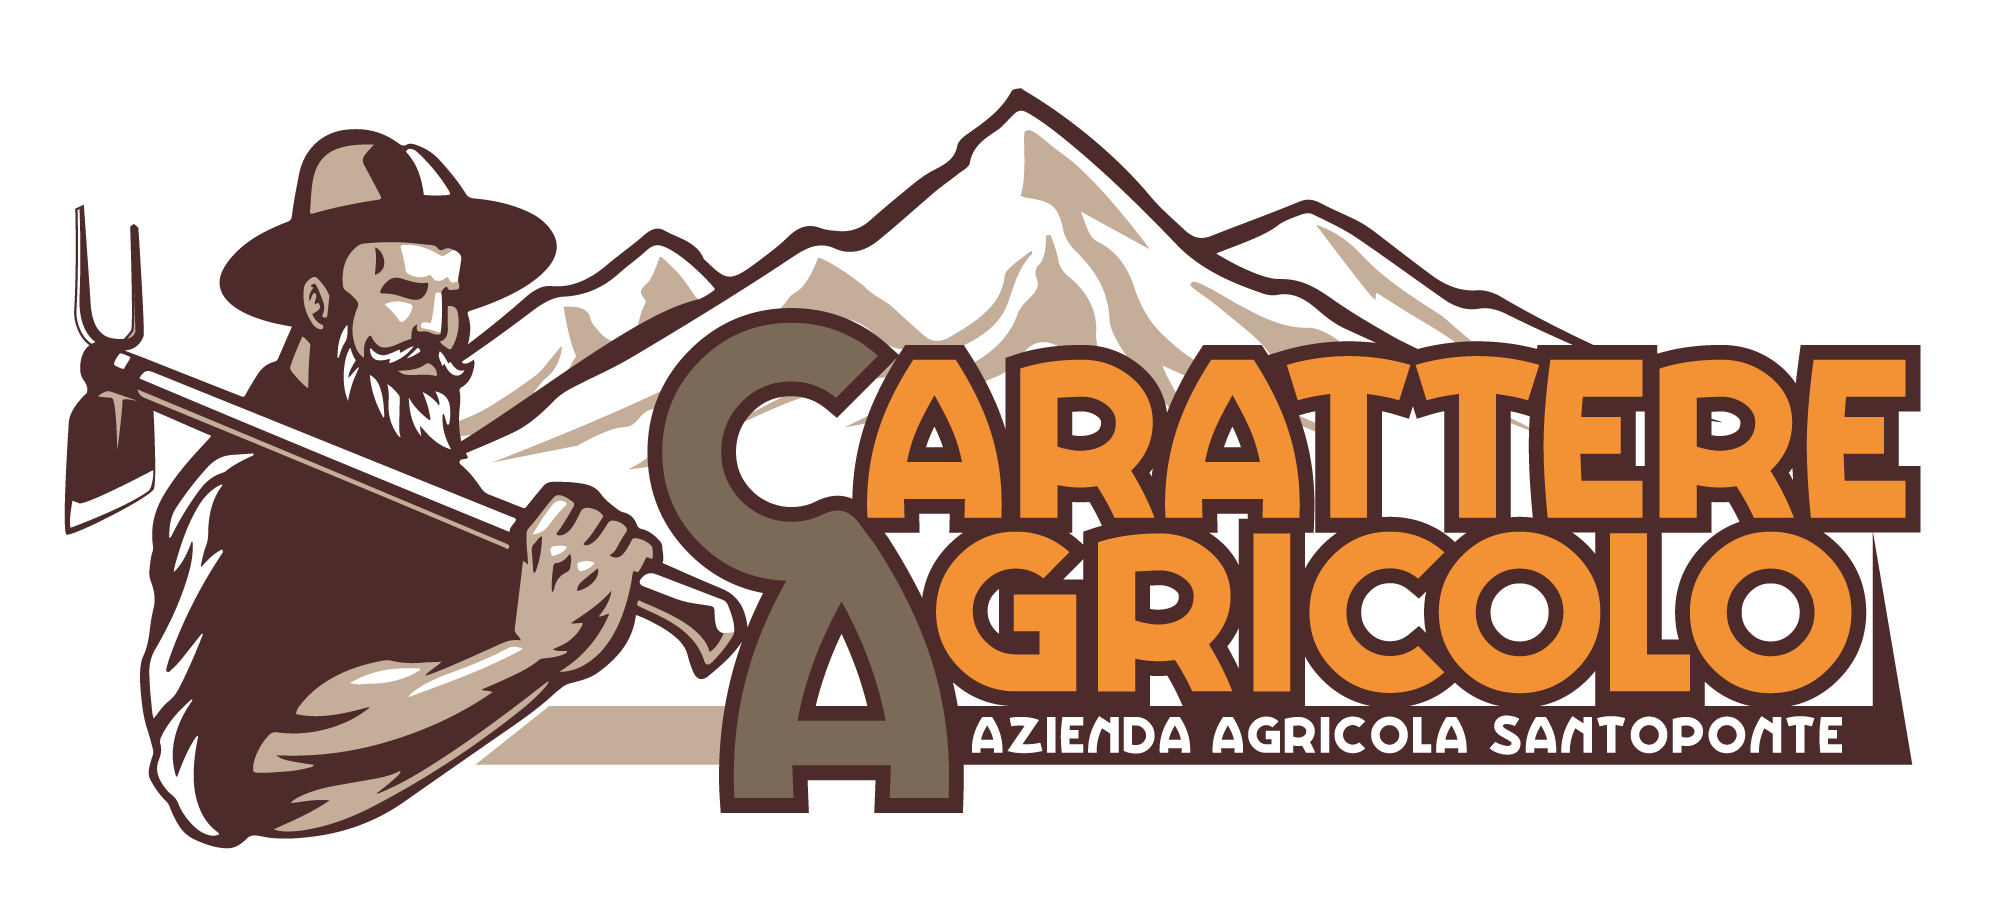 Carattere Agricolo